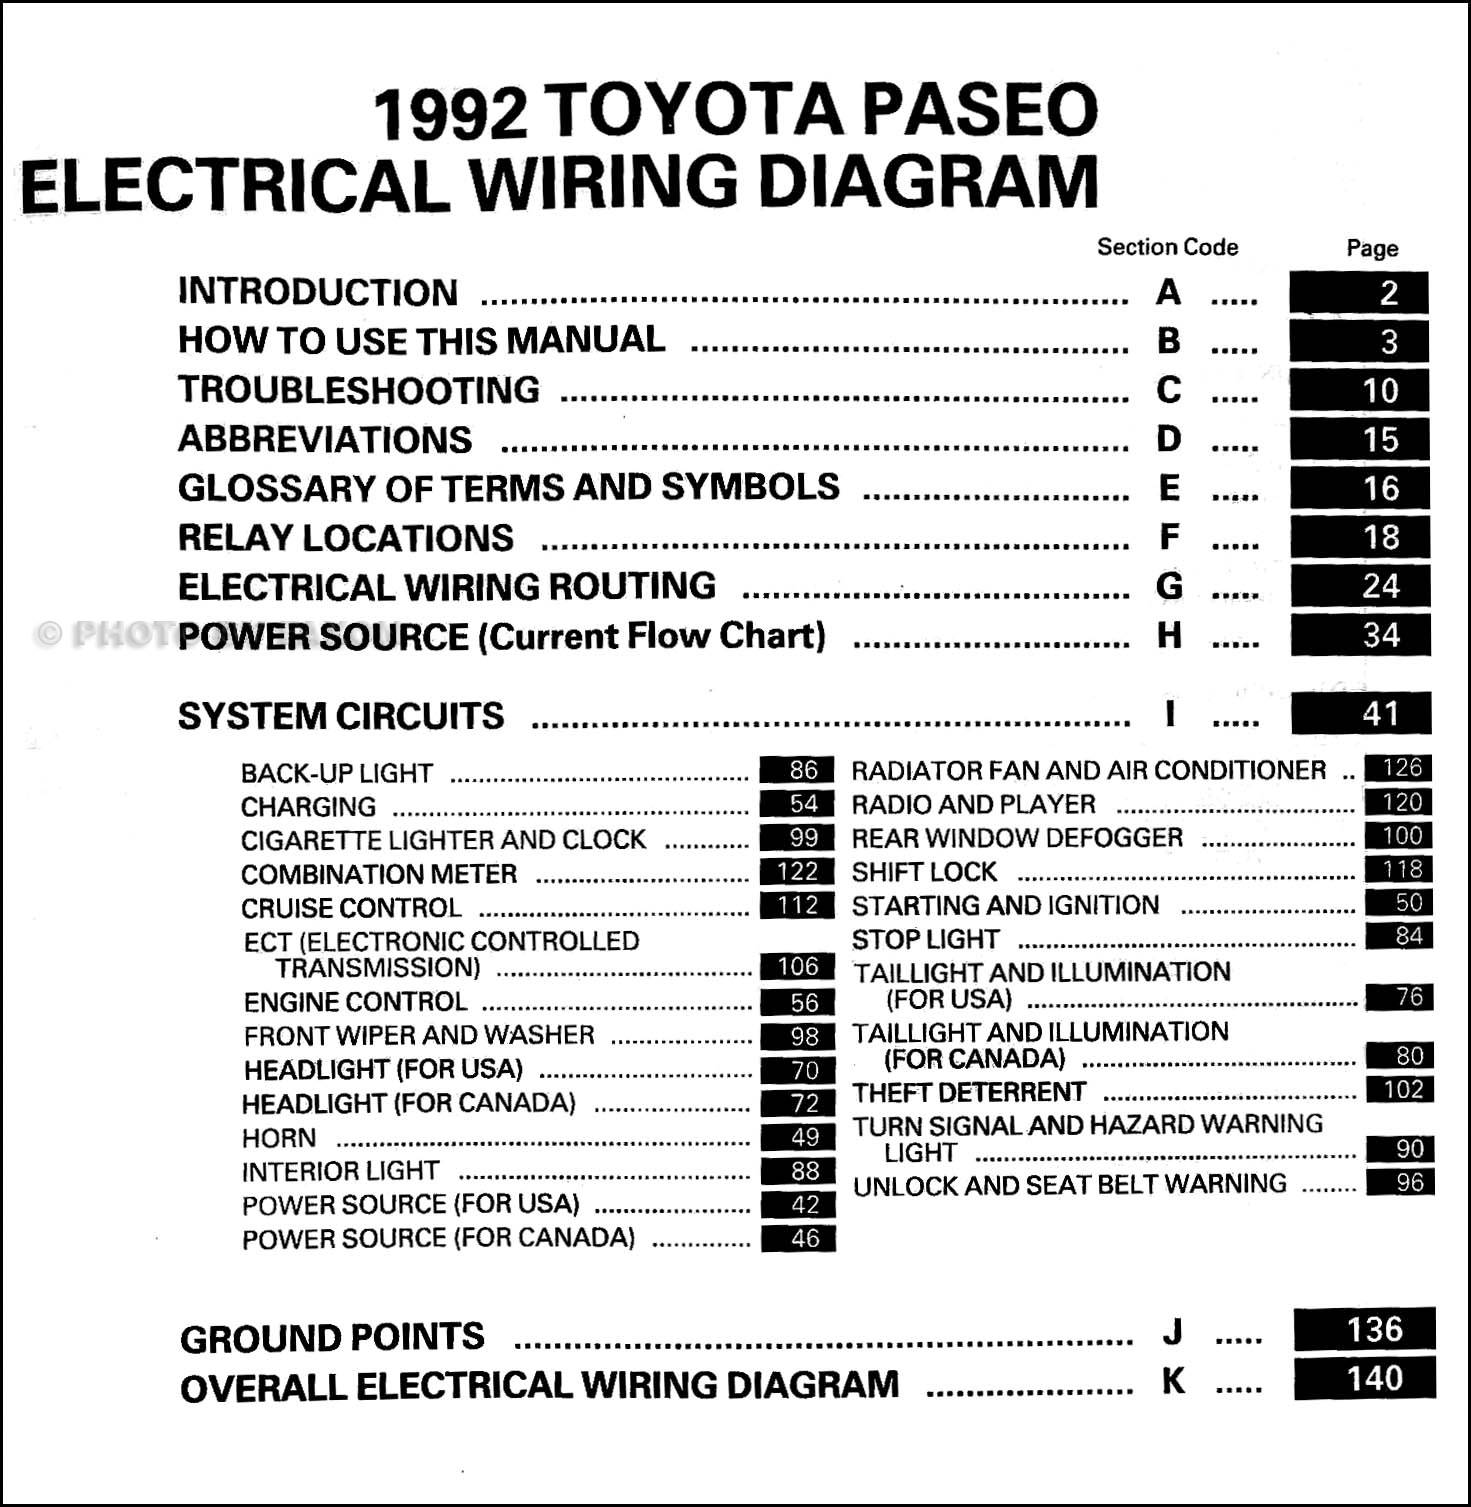 1992 Toyota Paseo Wiring Diagram Manual Original 92 Saturn Fuse Box Table Of Contents